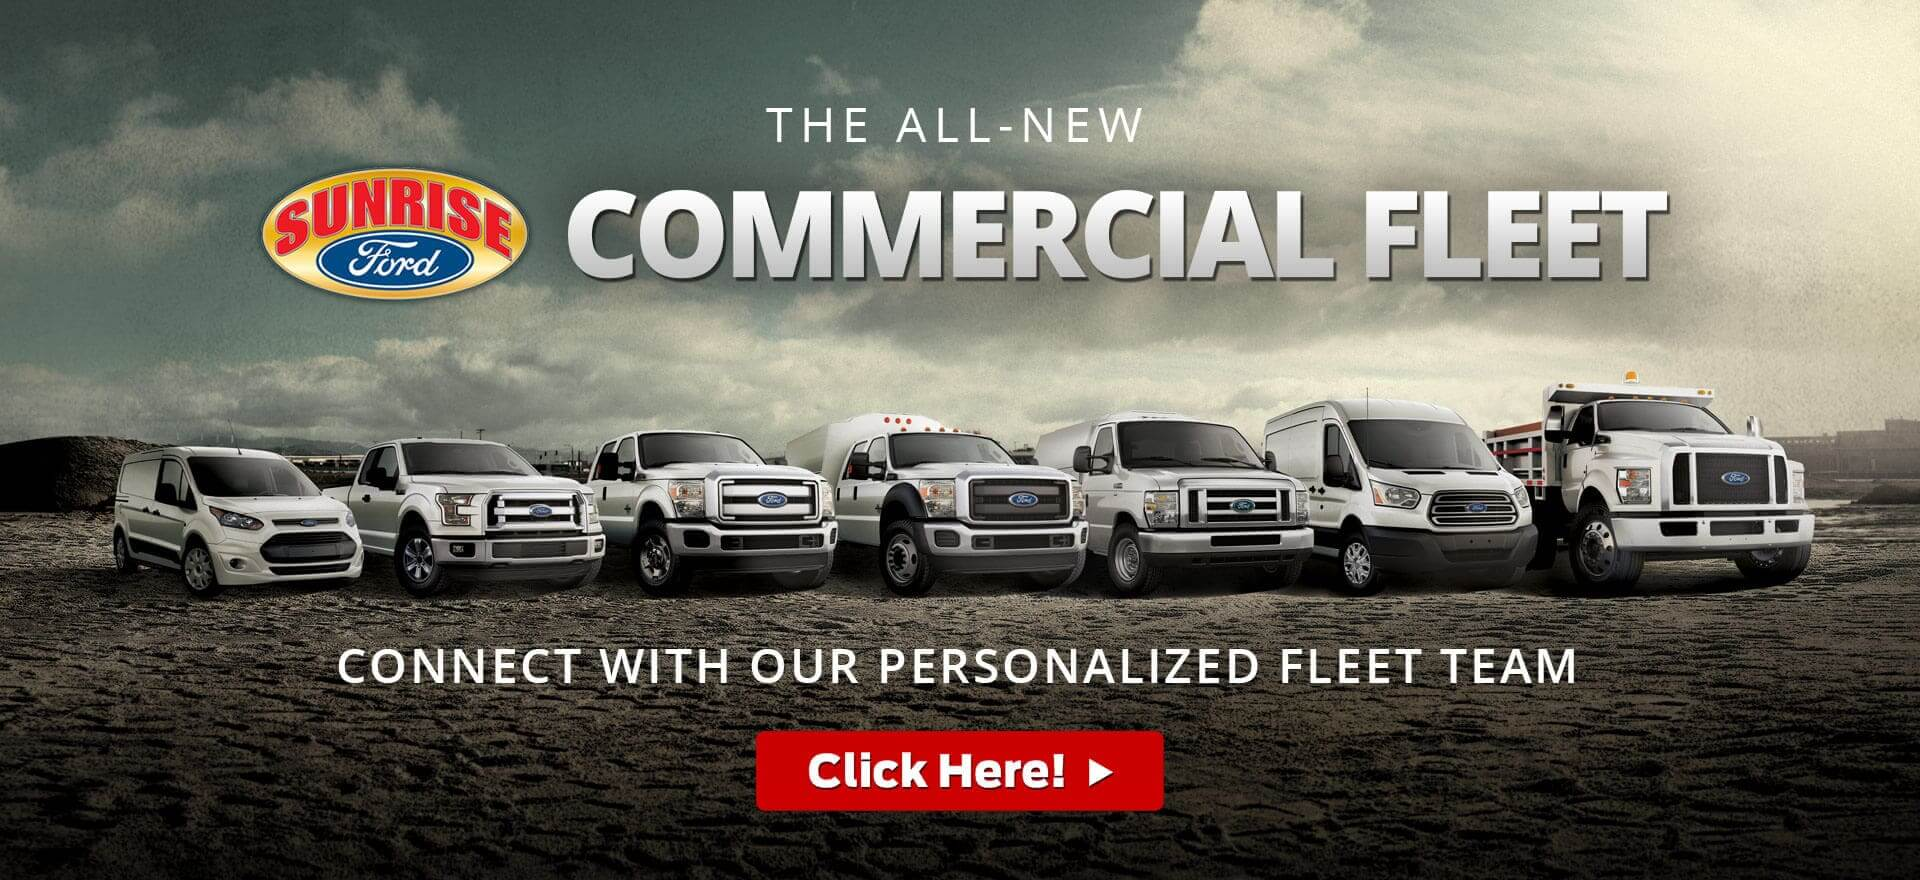 Sunrise Ford North Hollywood Commercial Fleet